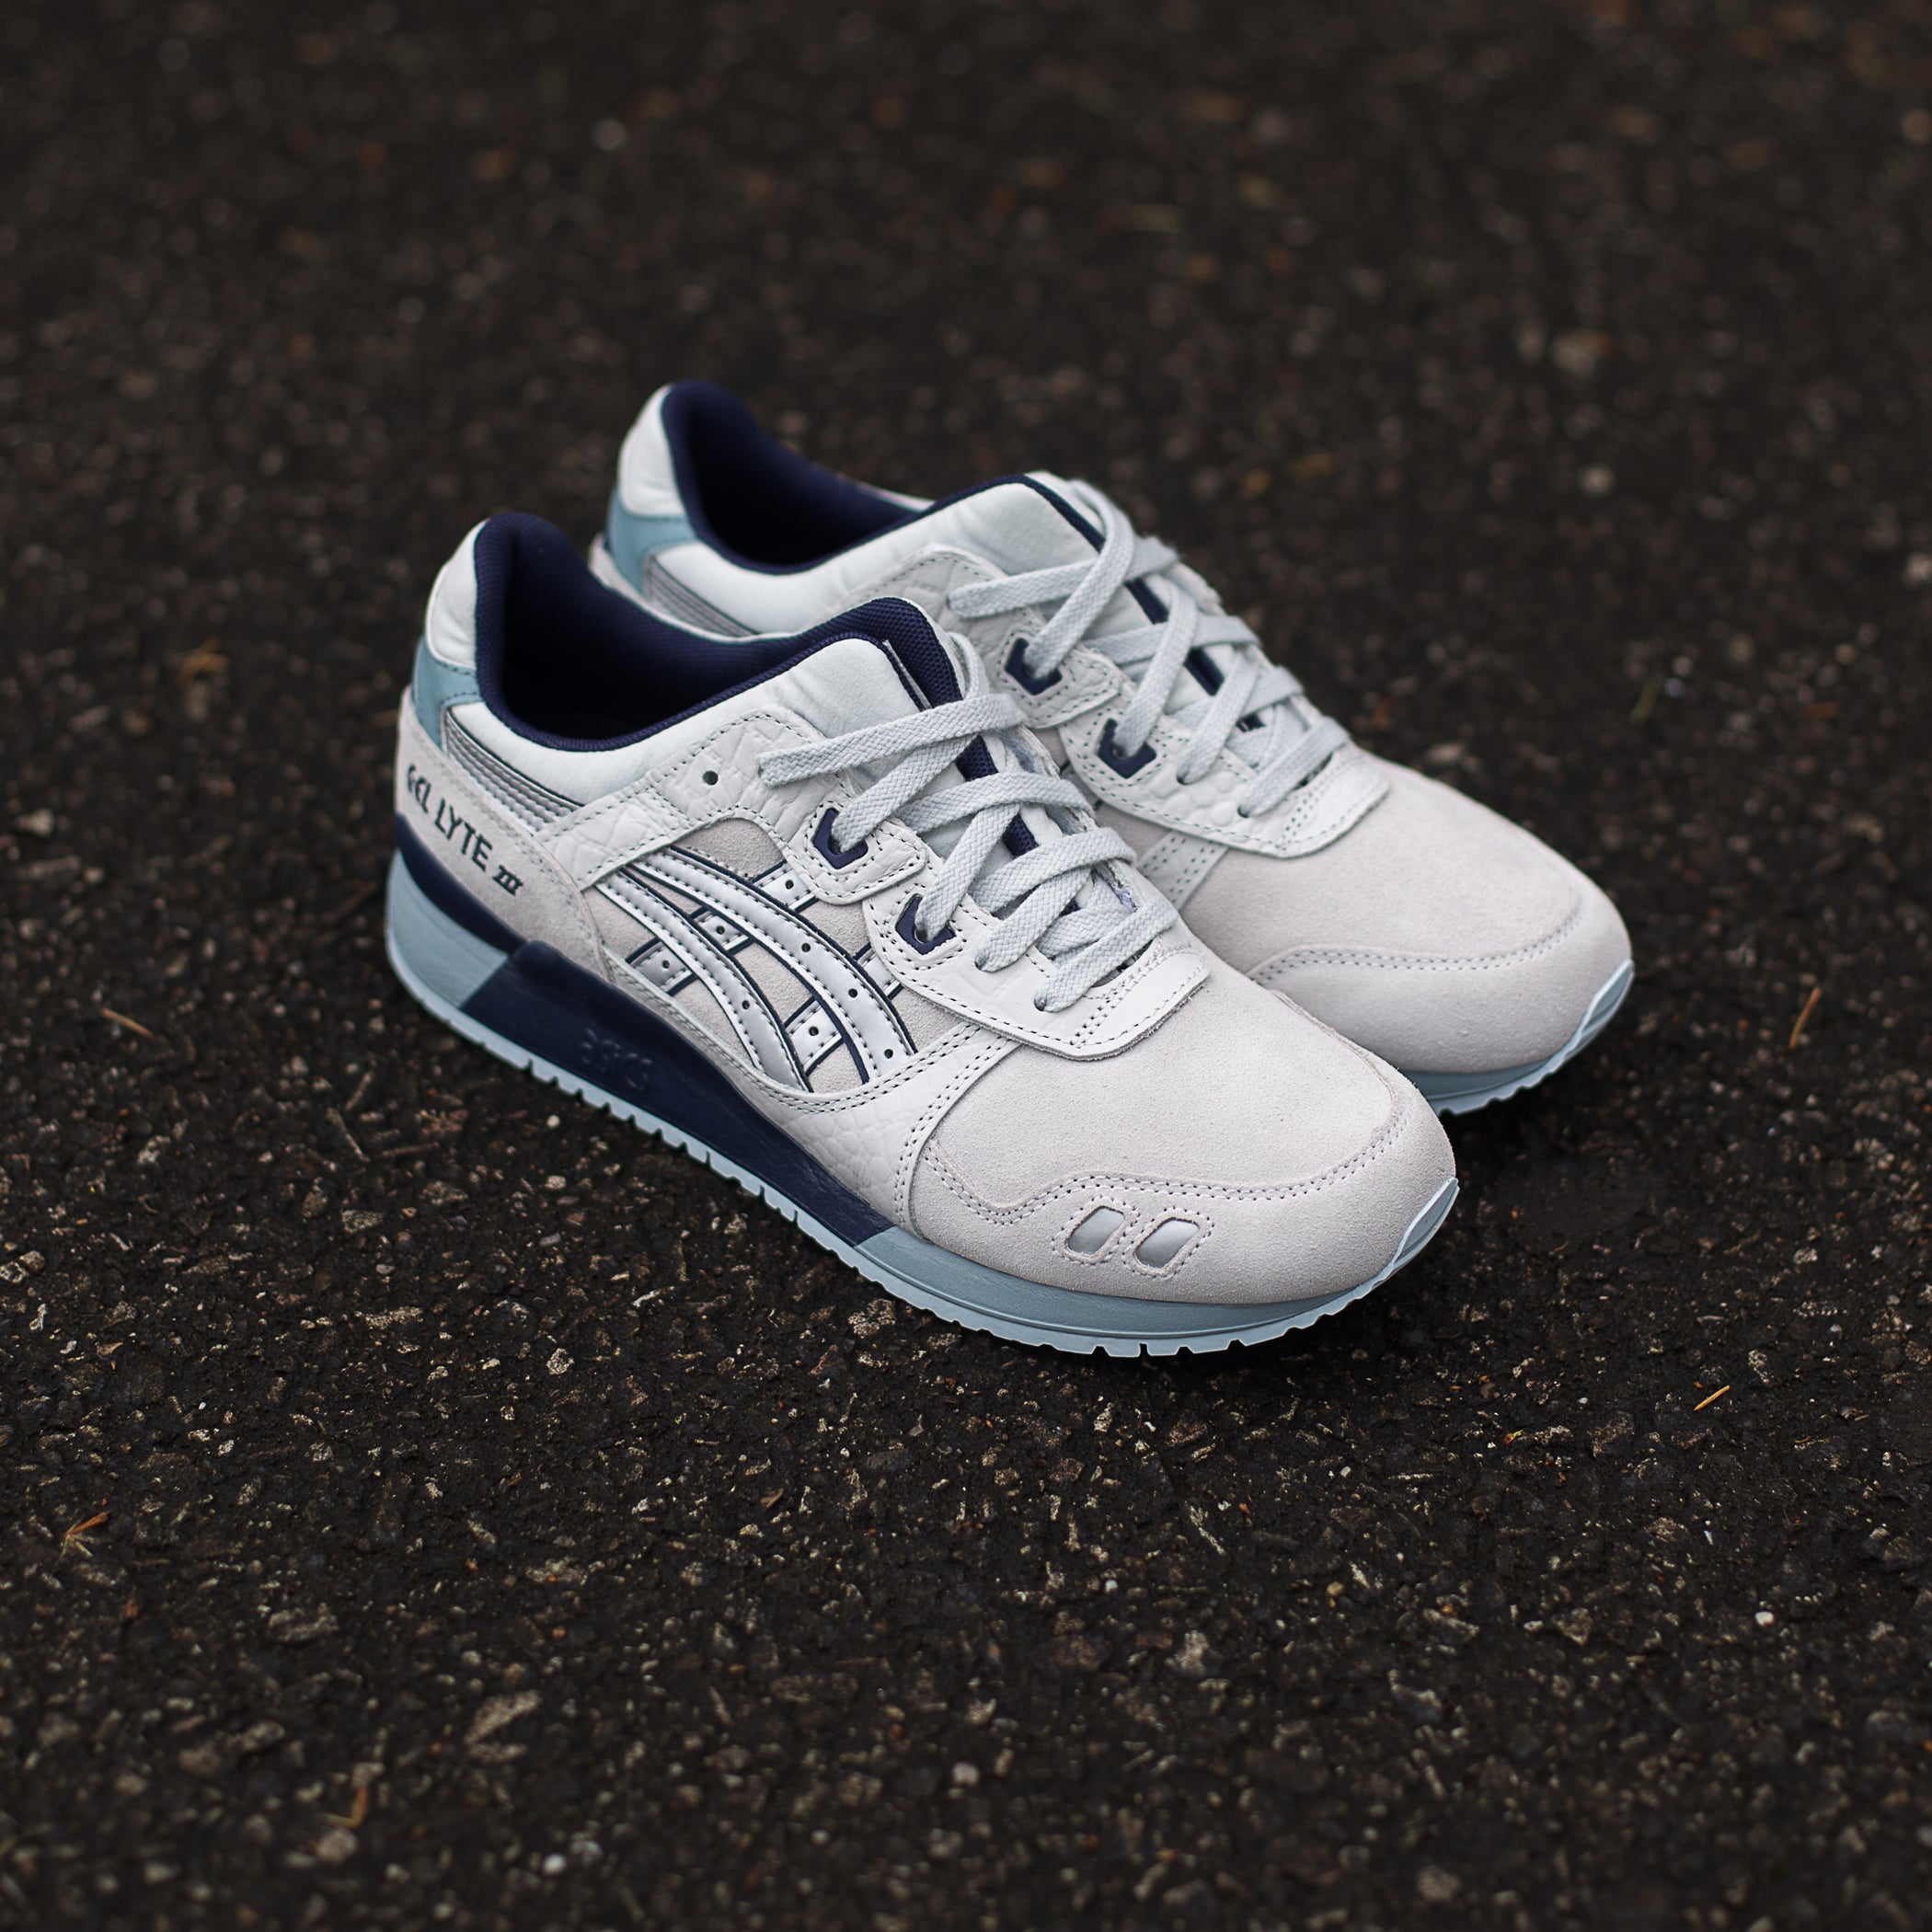 outlet store 86970 2c3d6 Asics GEL-Lyte III